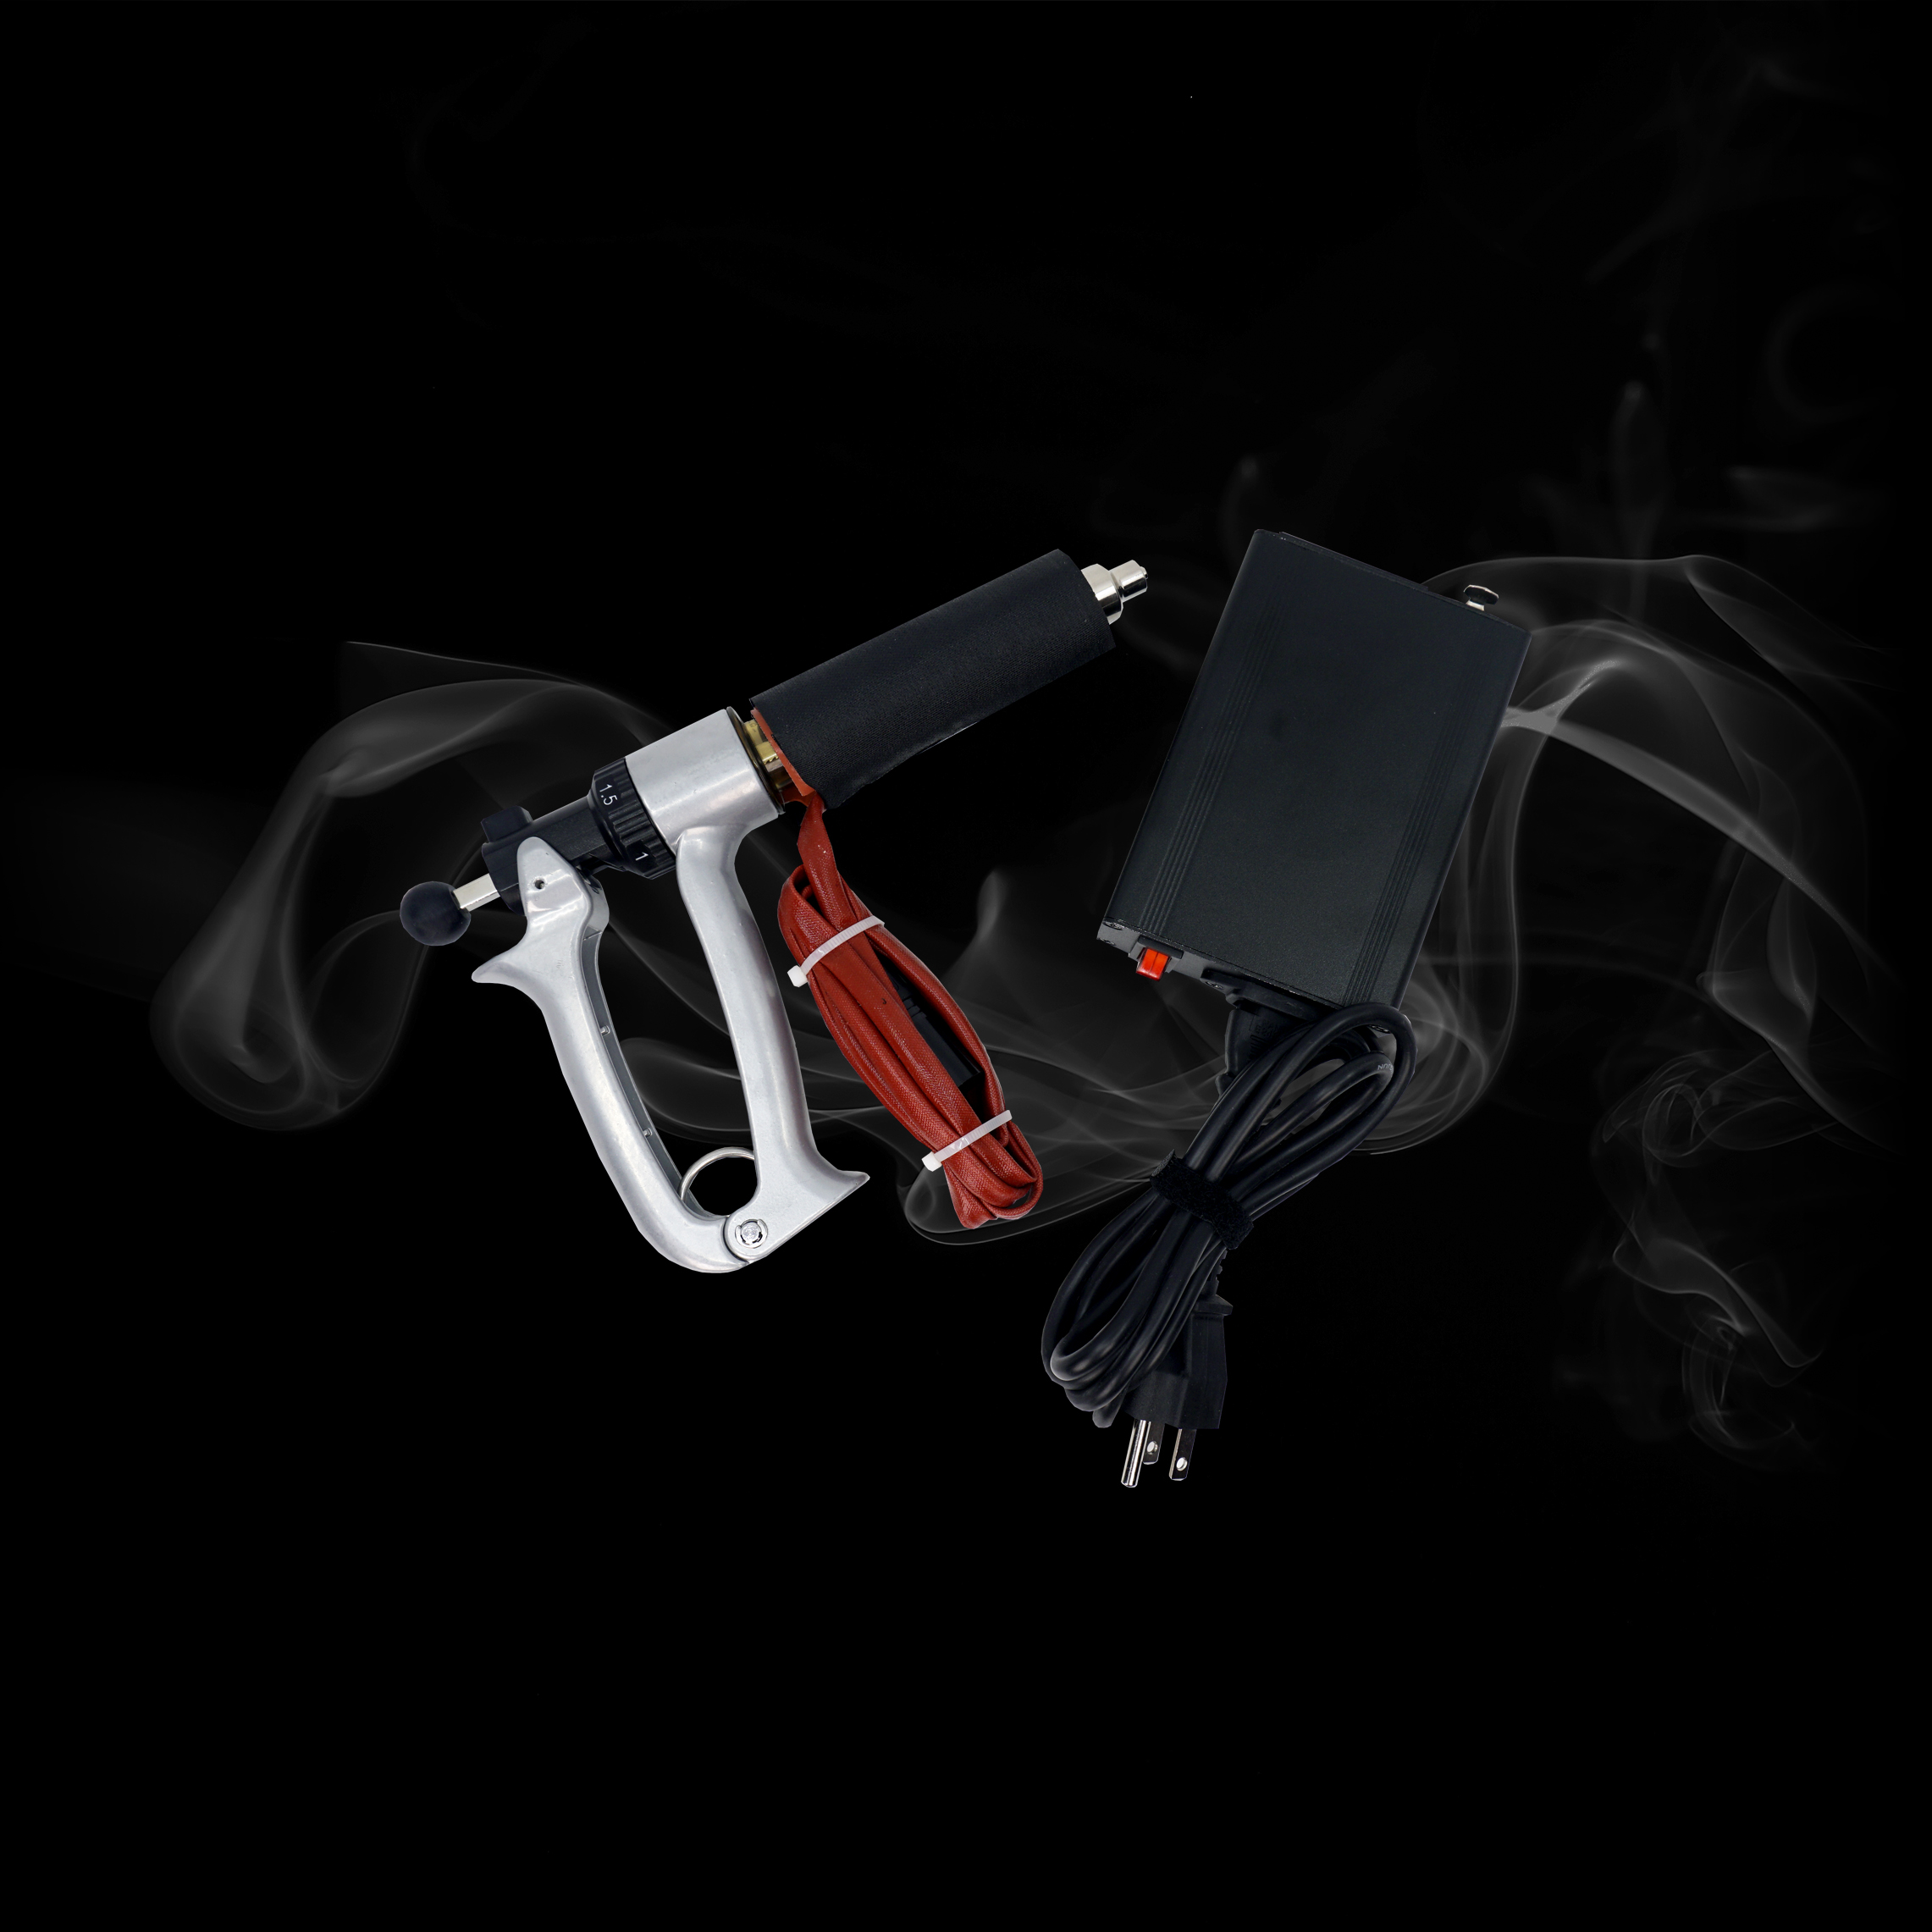 handheld filling gun - features:heating sleeve maintains temp throughout fillvolumetric filler*call us for more information